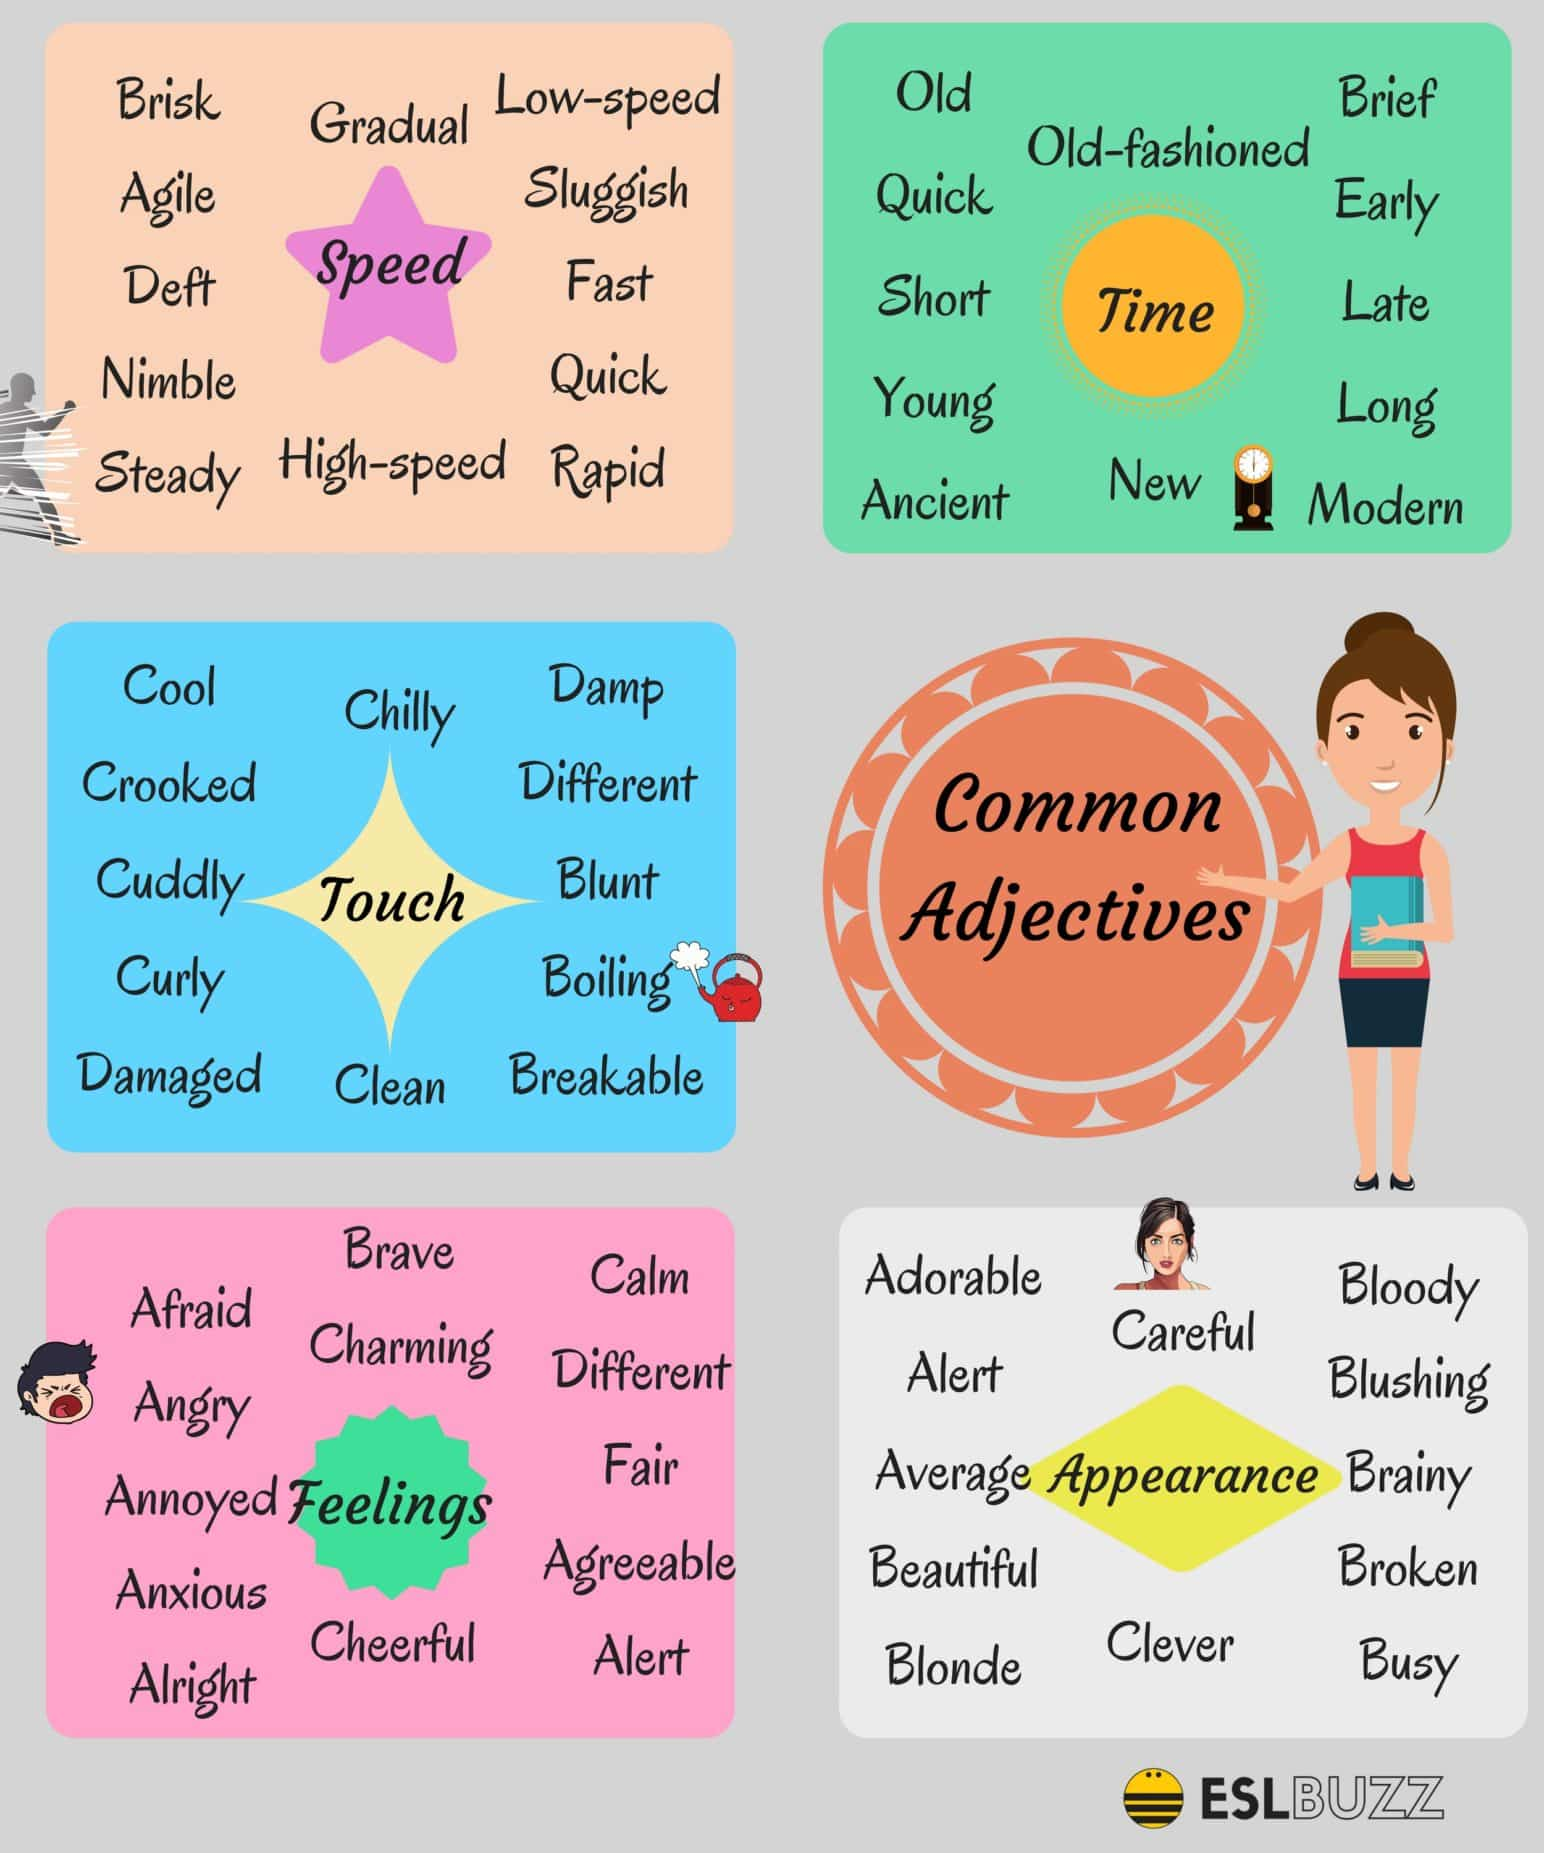 List of Adjectives - Common Adjectives in English 7